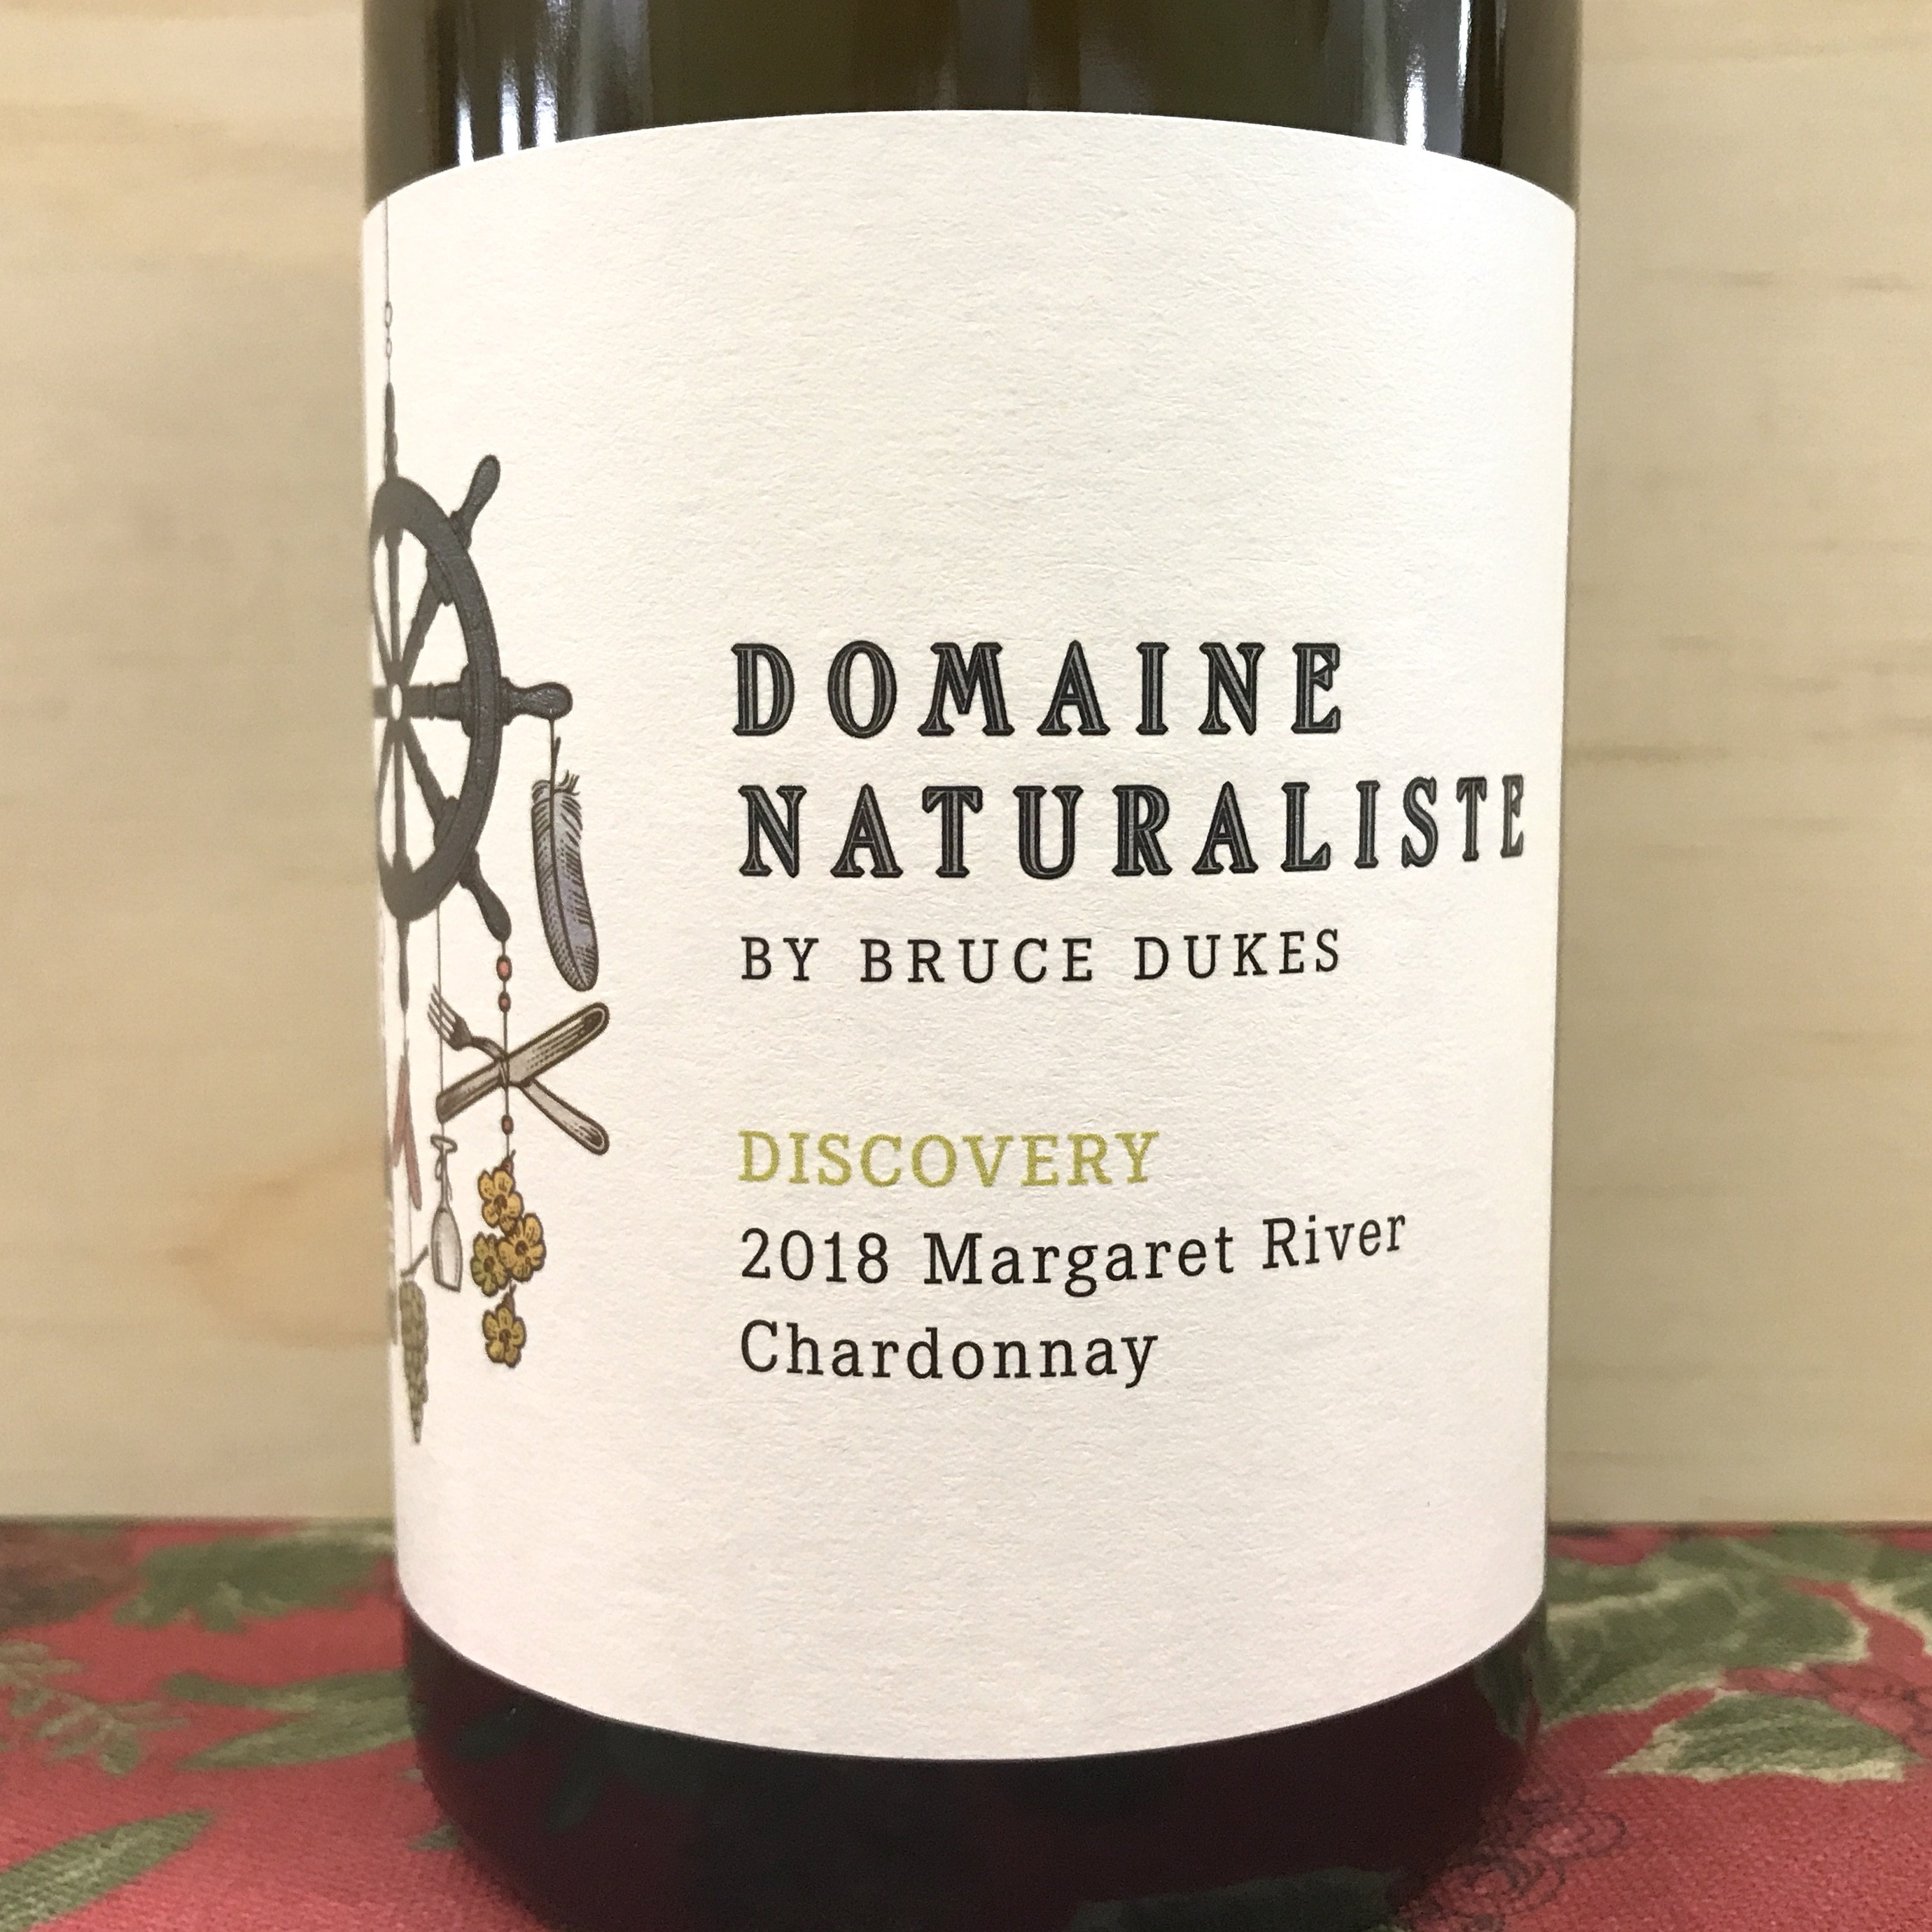 Domaine Naturaliste Discovery Margaret River Chardonnay 2018